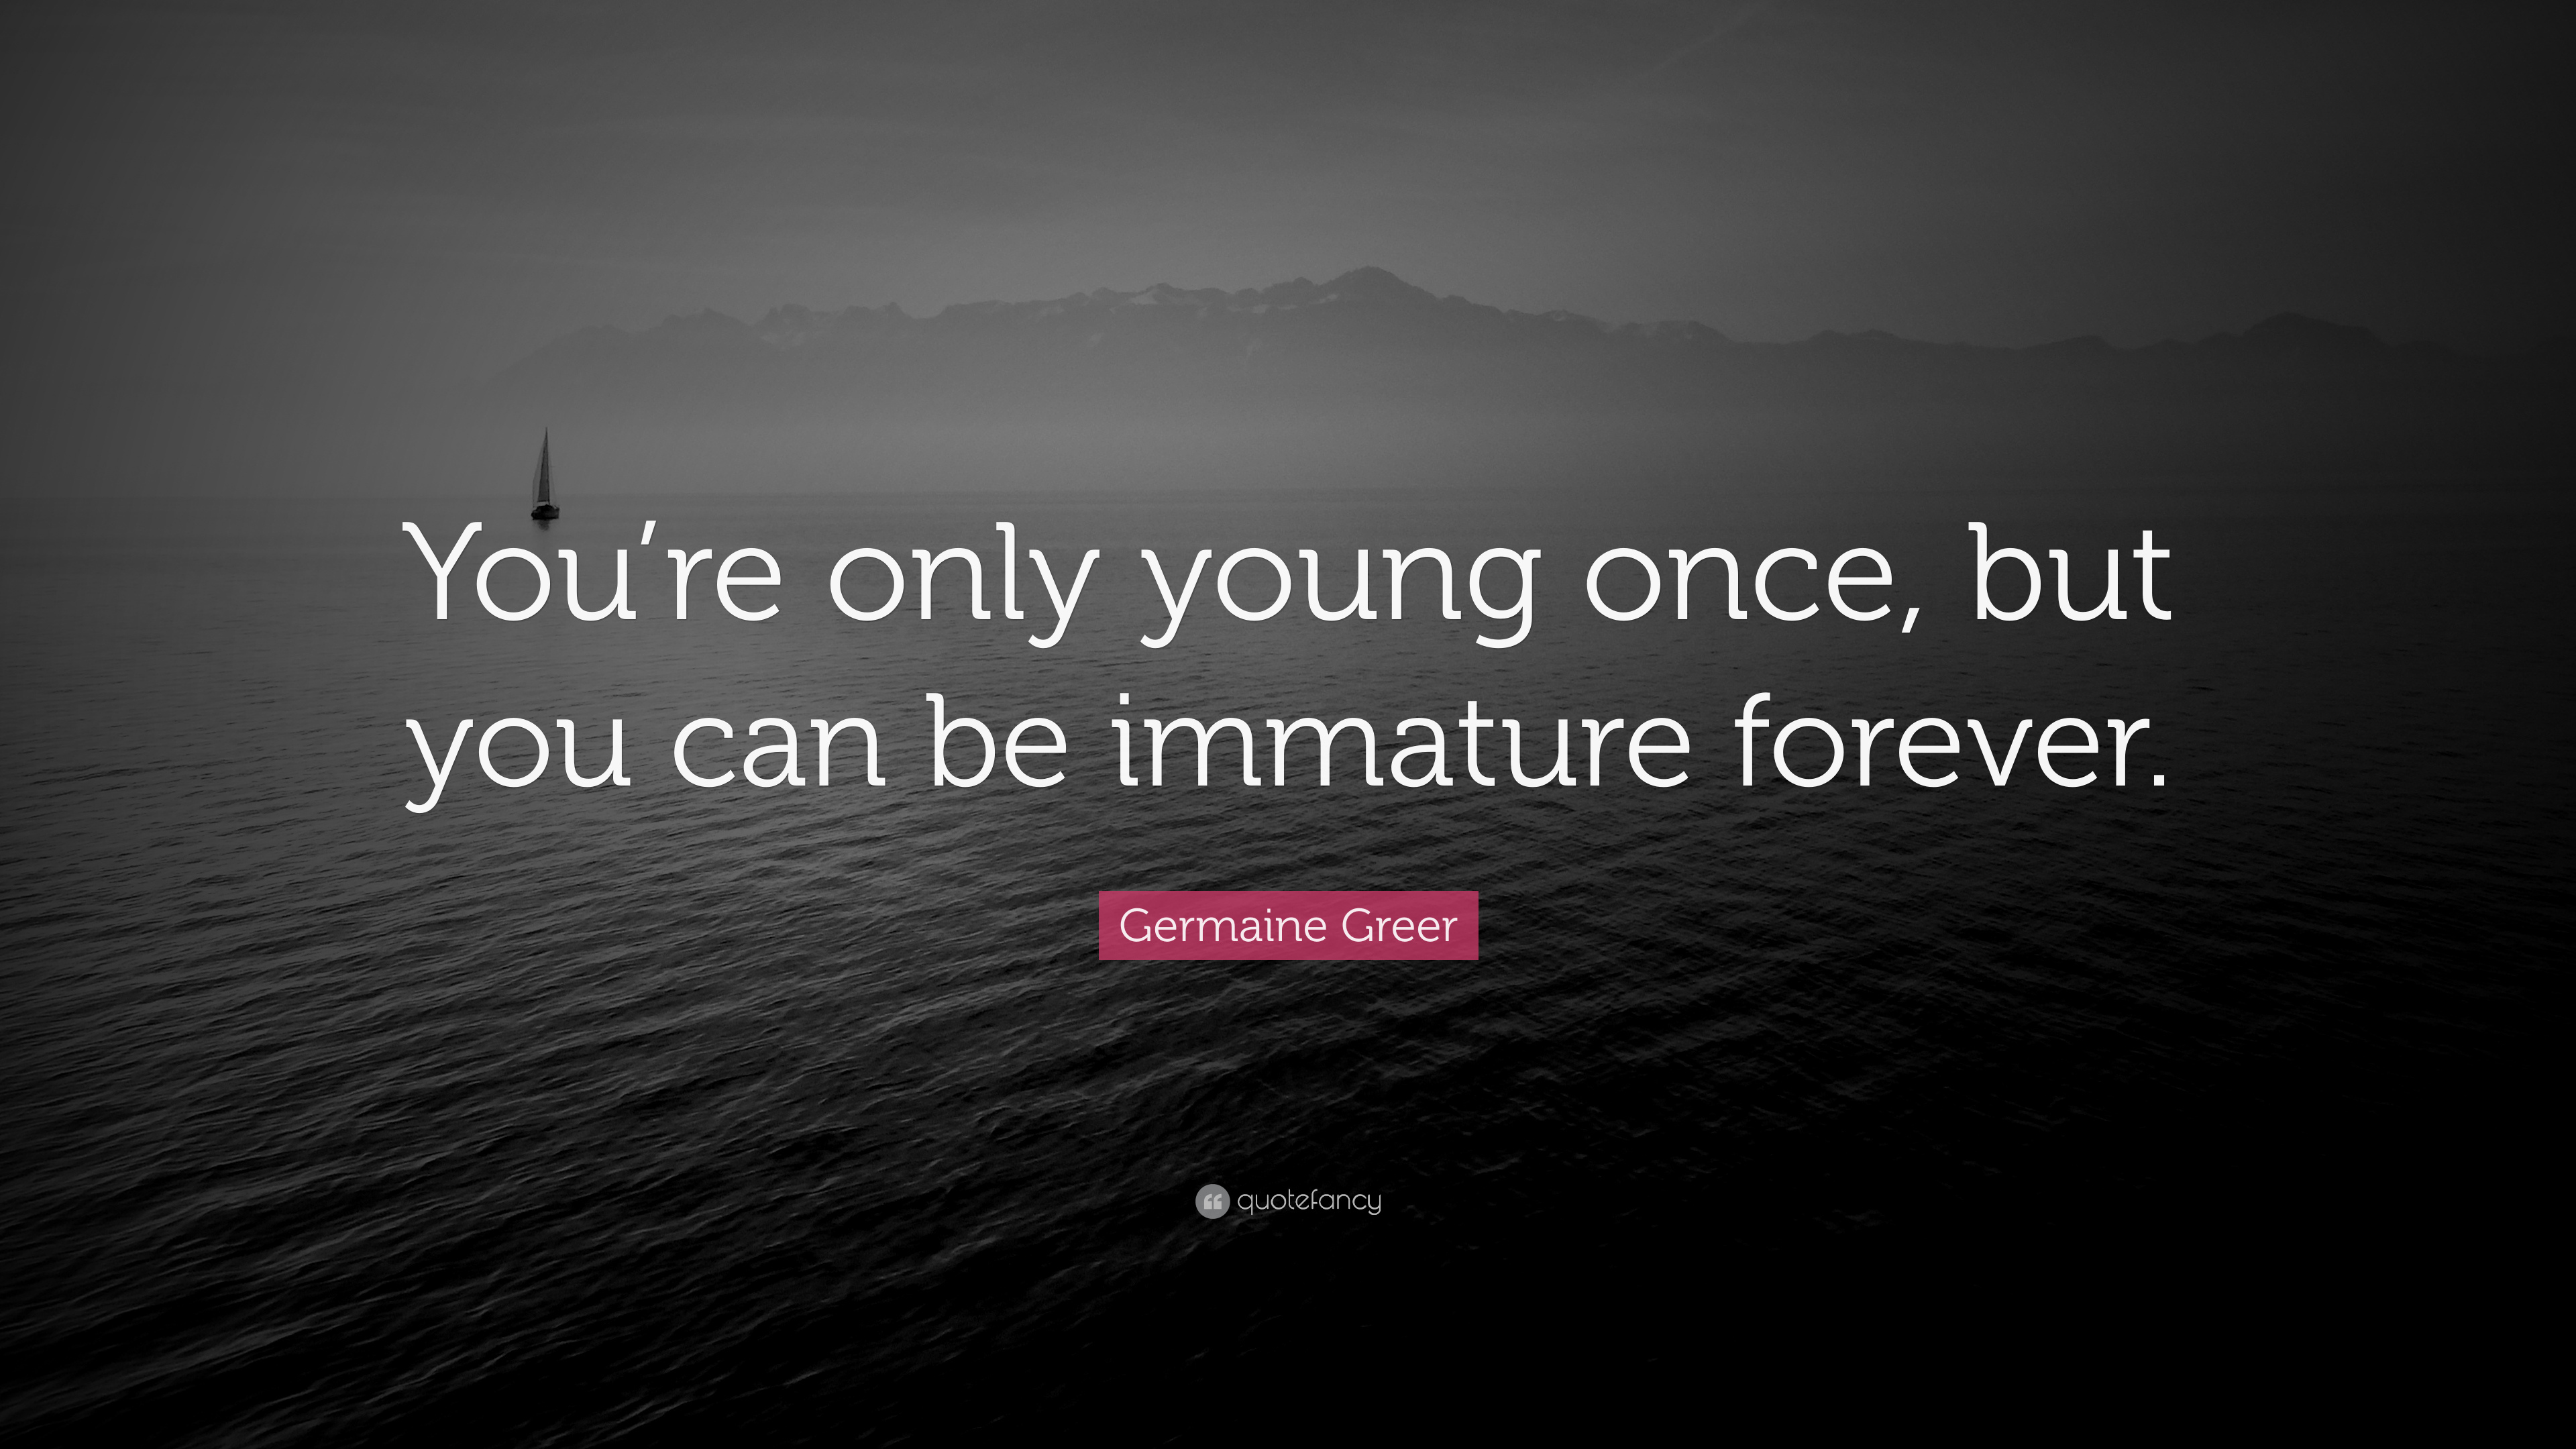 Germaine Greer Quote Youre Only Young Once But You Can Be